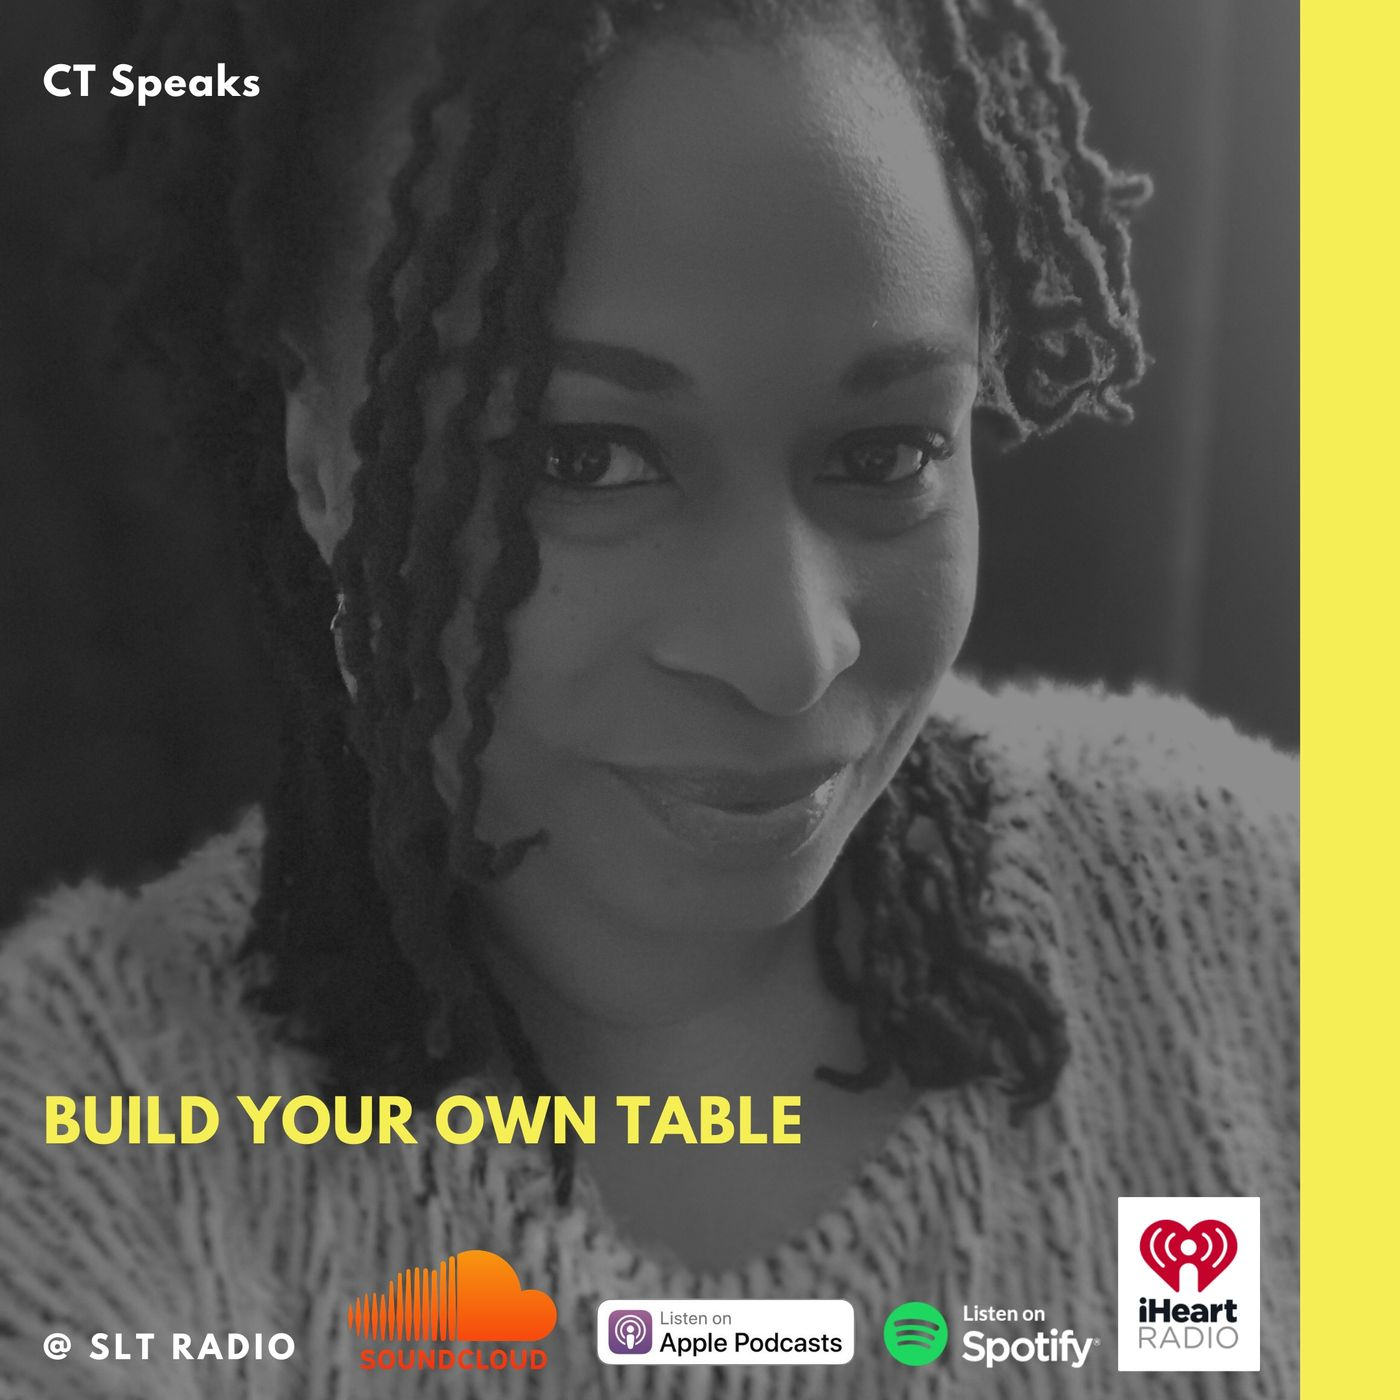 """3.23 - GM2Leader """"Build Your Own Table"""" - CT Speaks (Host)"""